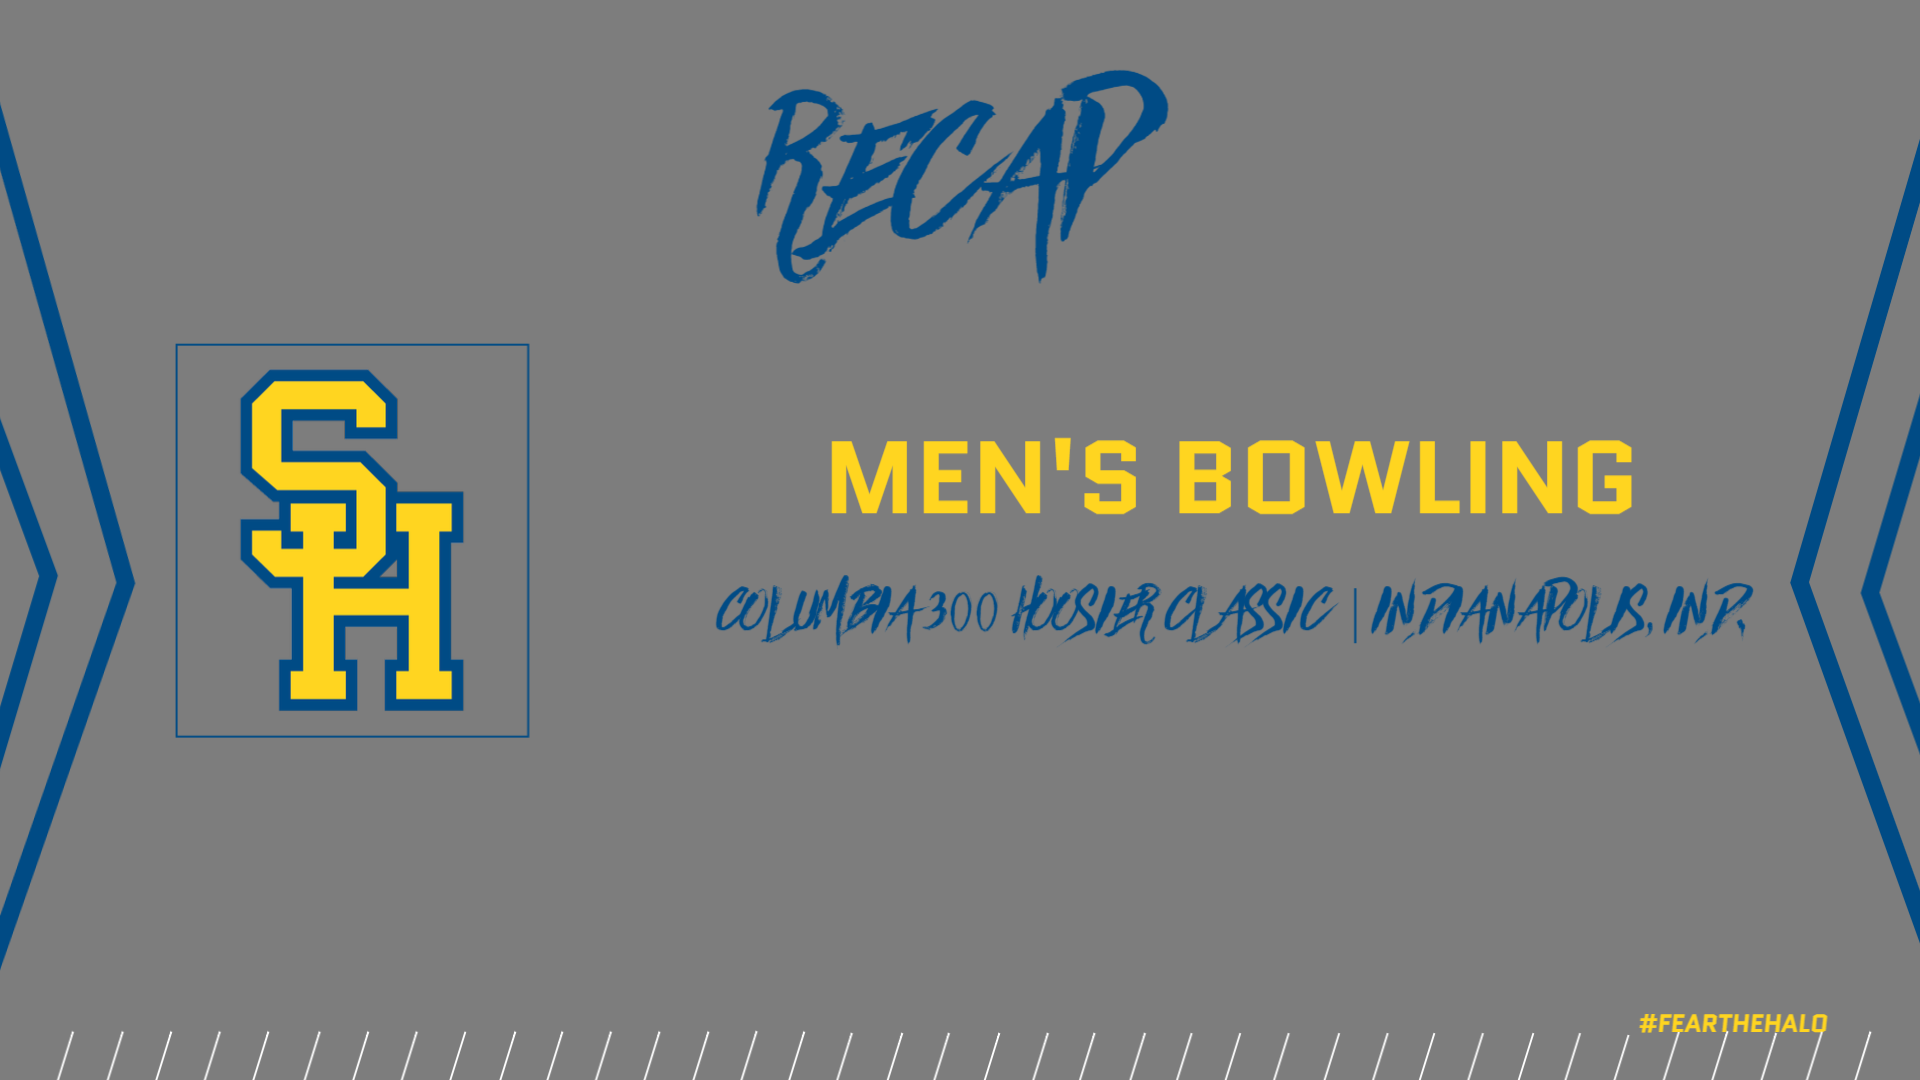 Men's Bowling Finishes 50th at Columbia 300 Hoosier Classic